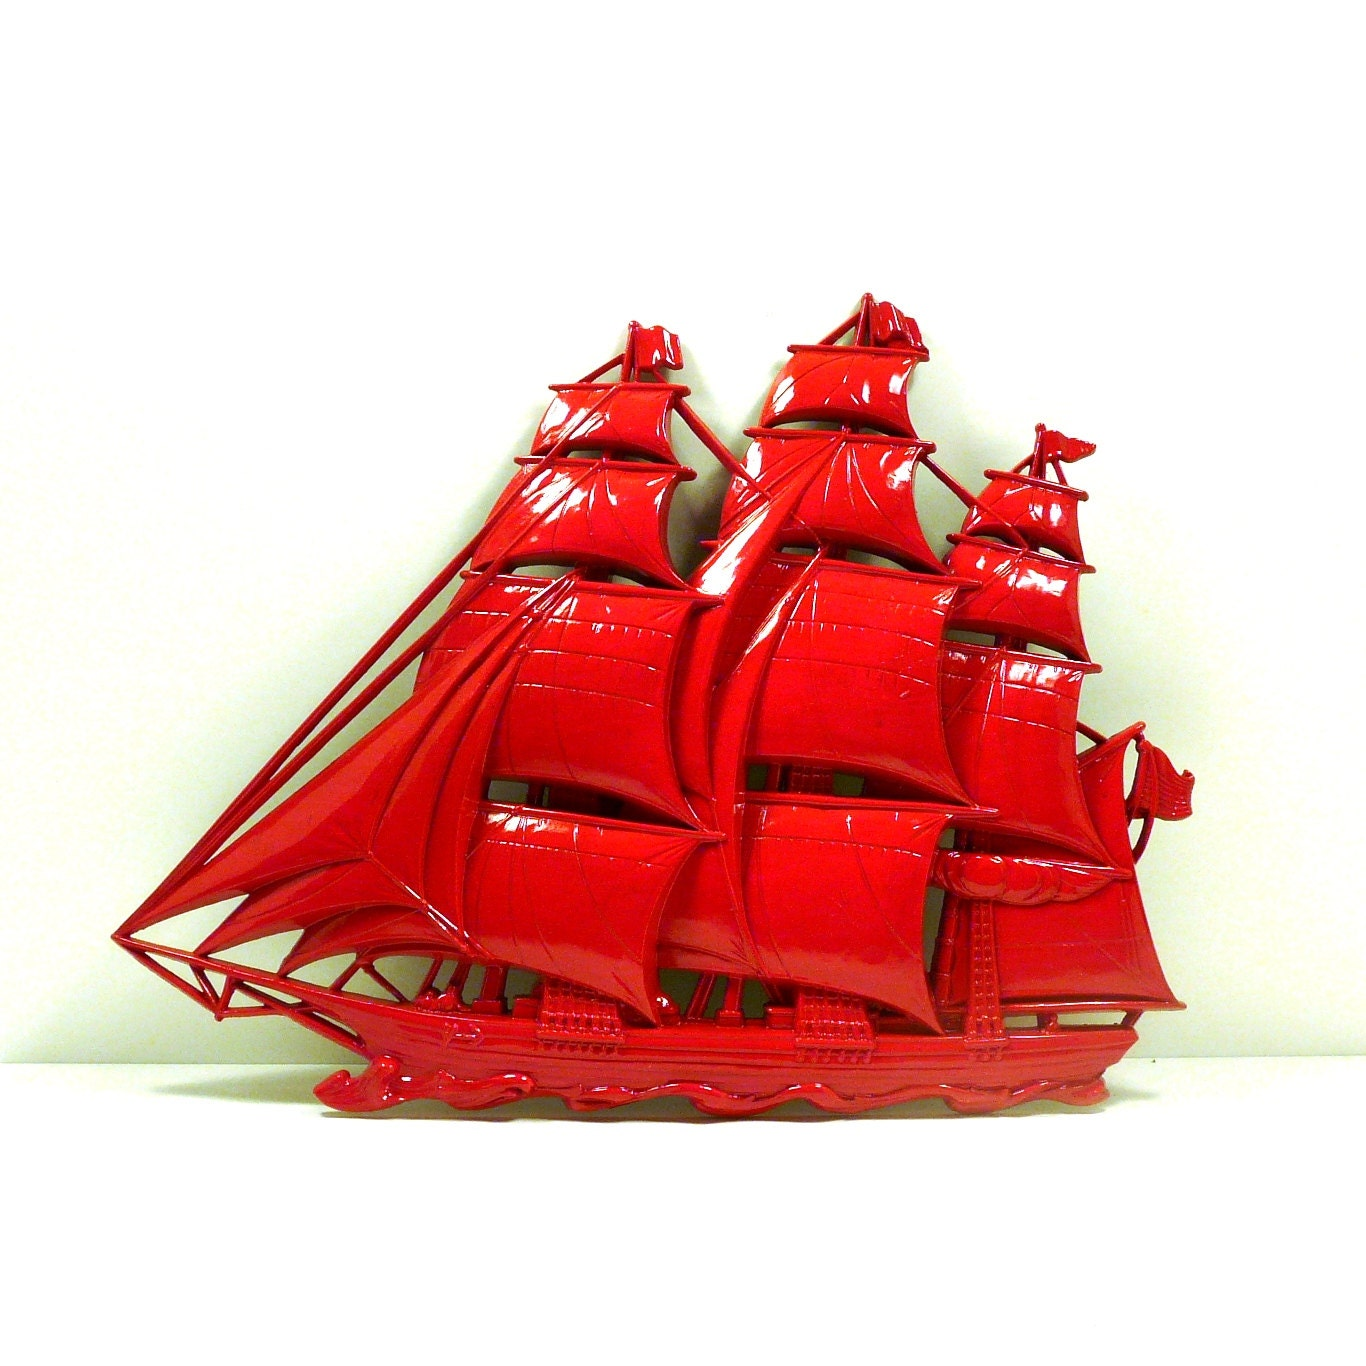 Red ship nautical home decor upcycled wall art unique by for Ship decor home